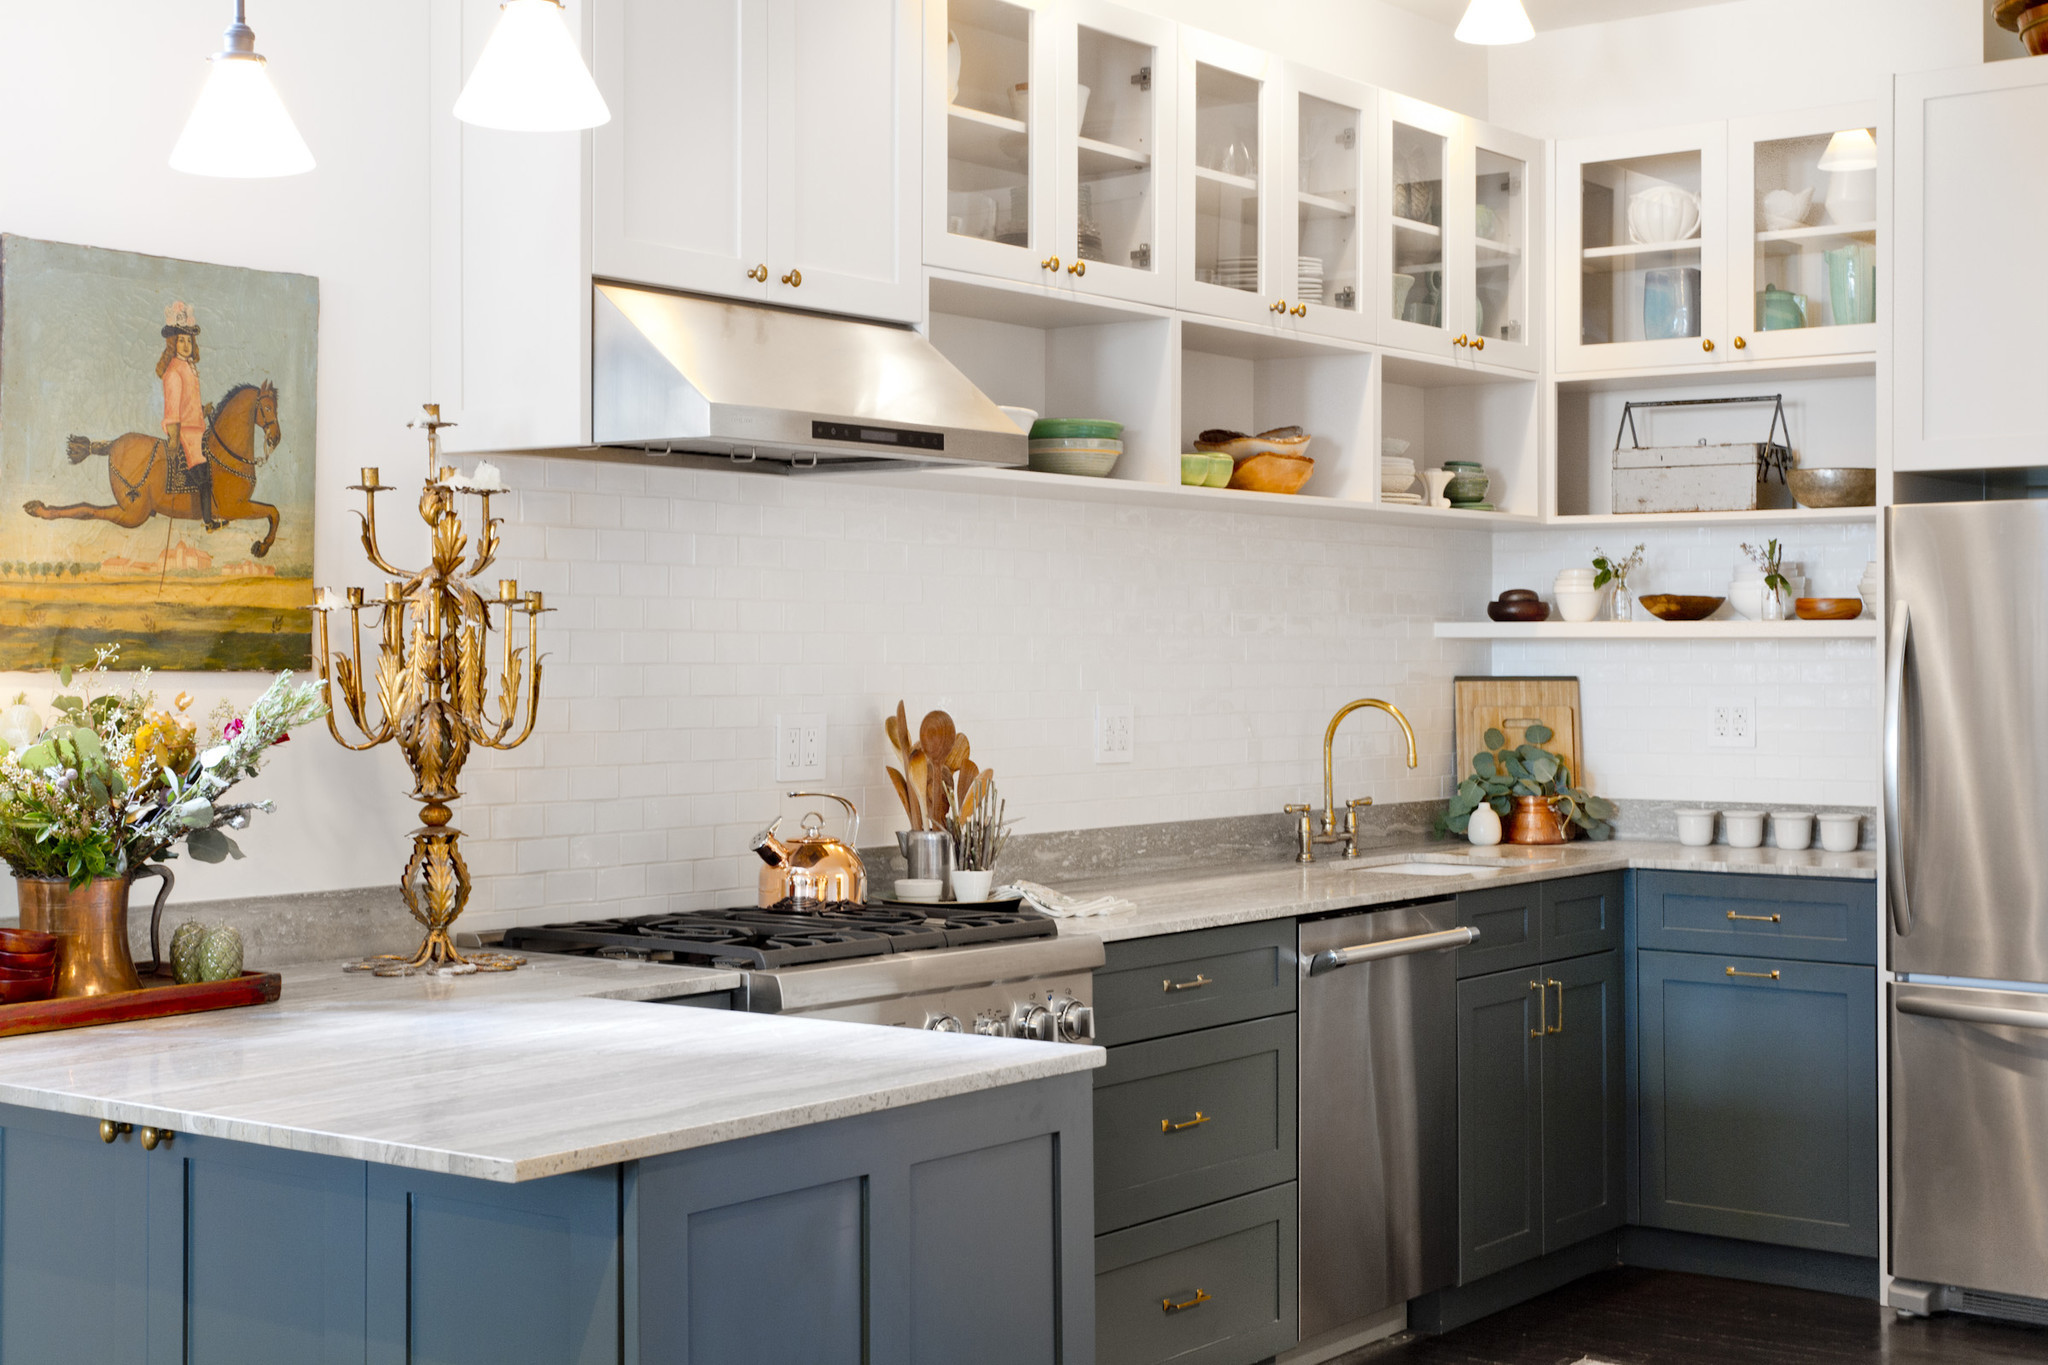 18 home decor and design trends we 39 ll be watching in 2018 for Key west style kitchen designs